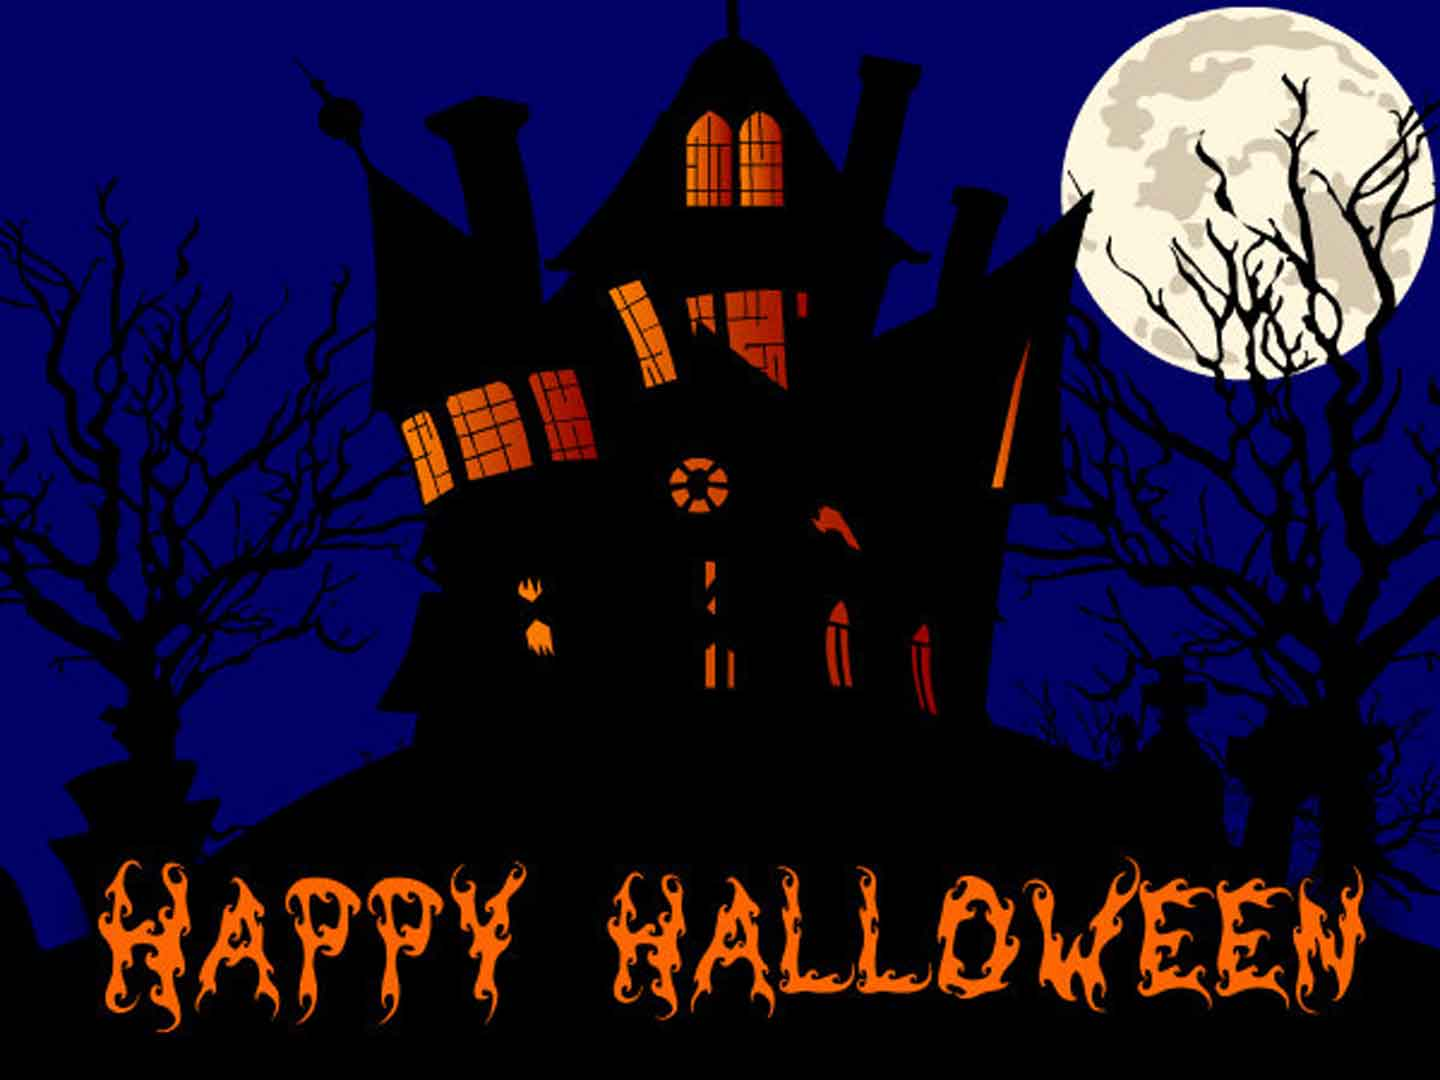 Happy Halloween Backgrounds wallpaper wallpaper hd background 1440x1080